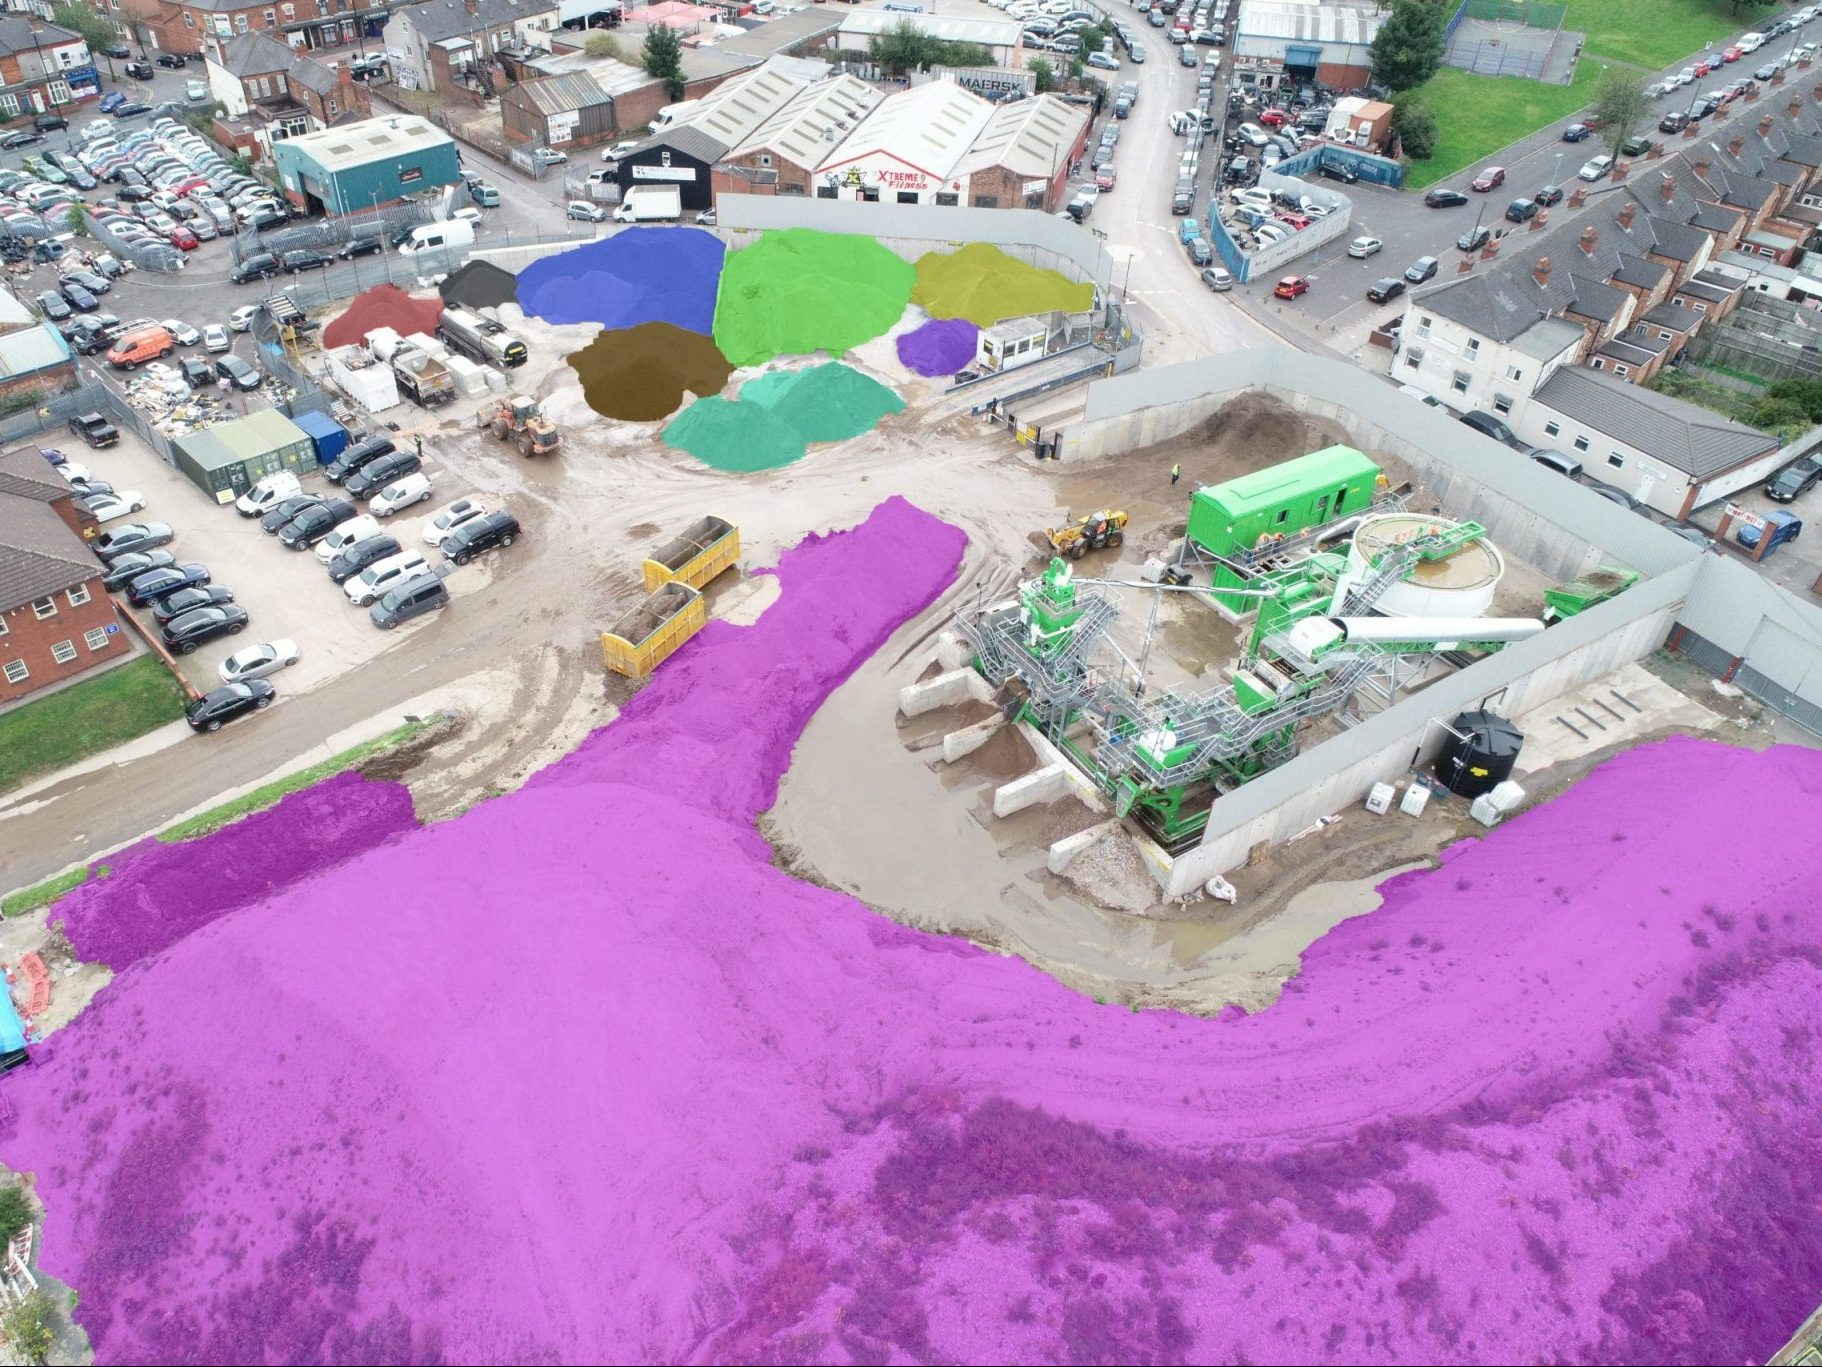 Volumetric Stockpile measuring using drones and photogrammetry software